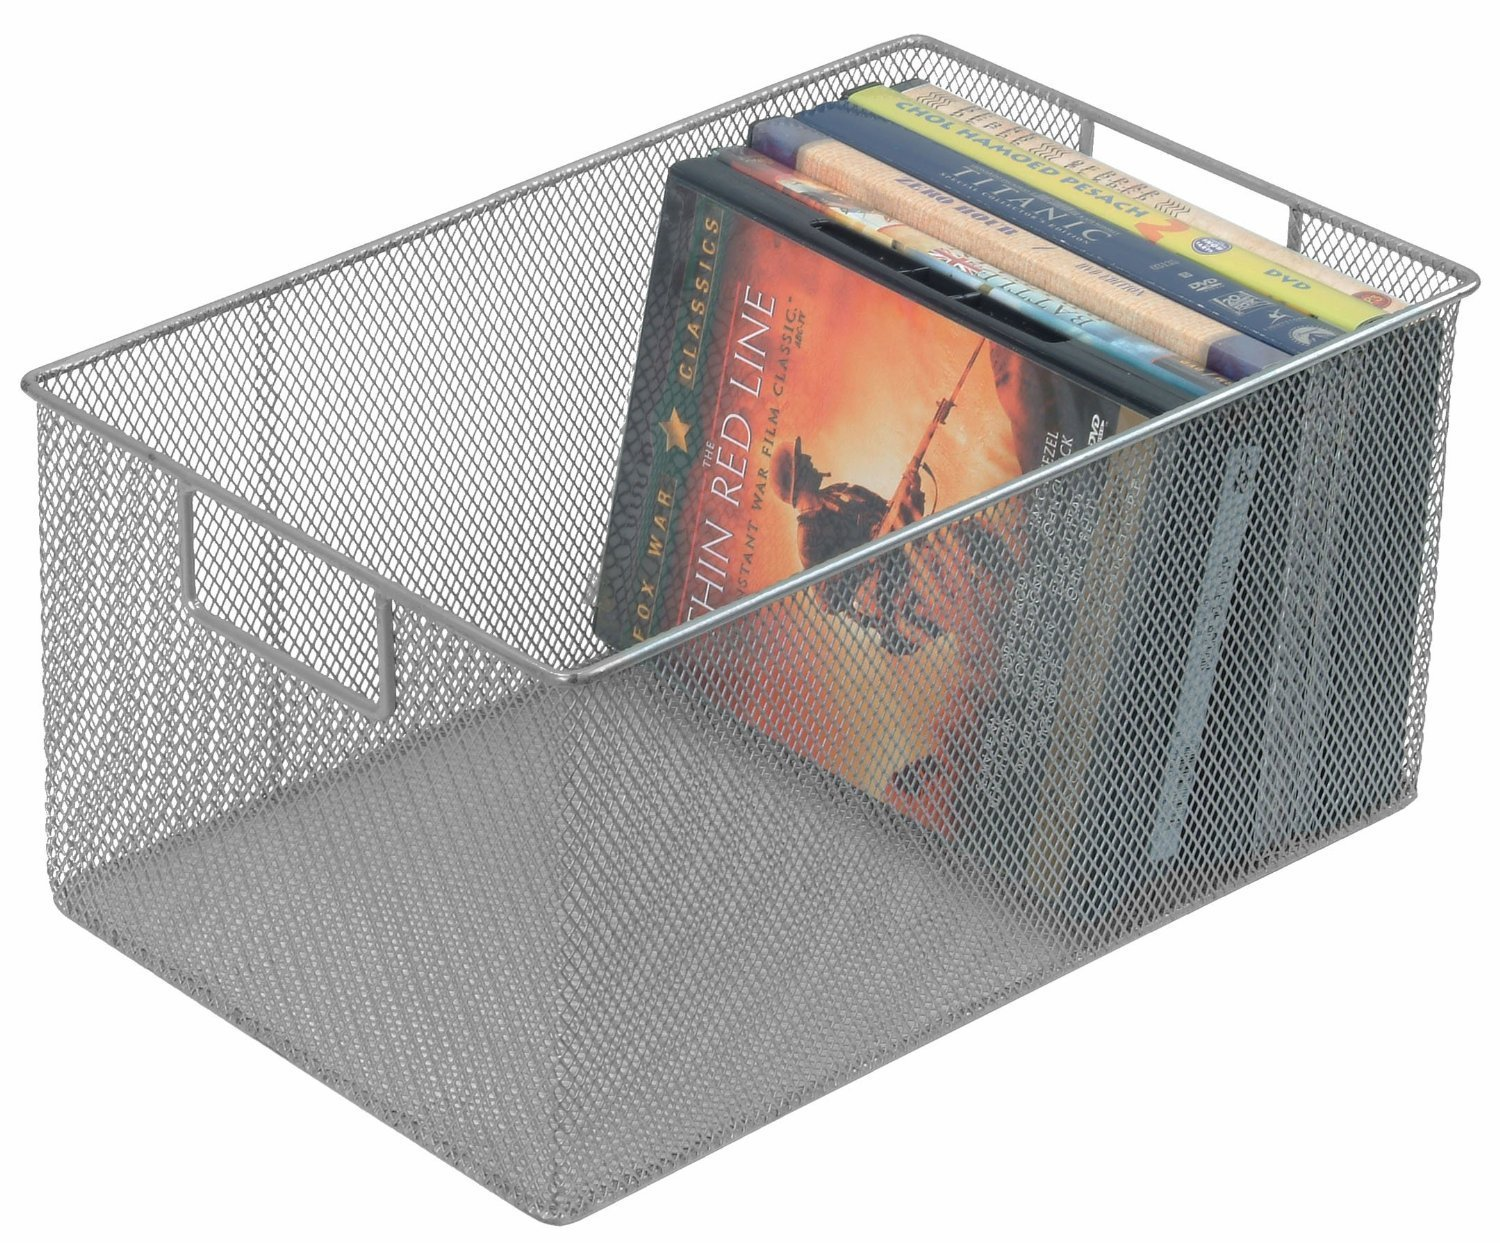 YBM Home Silver Mesh Open Bin Storage Basket DVD Cd Book Holder